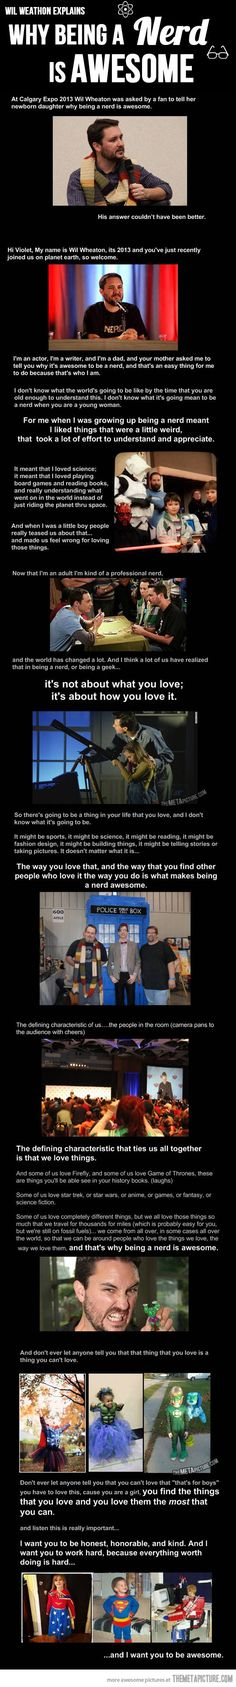 Wil Wheaton explains why being a nerd is awesome.